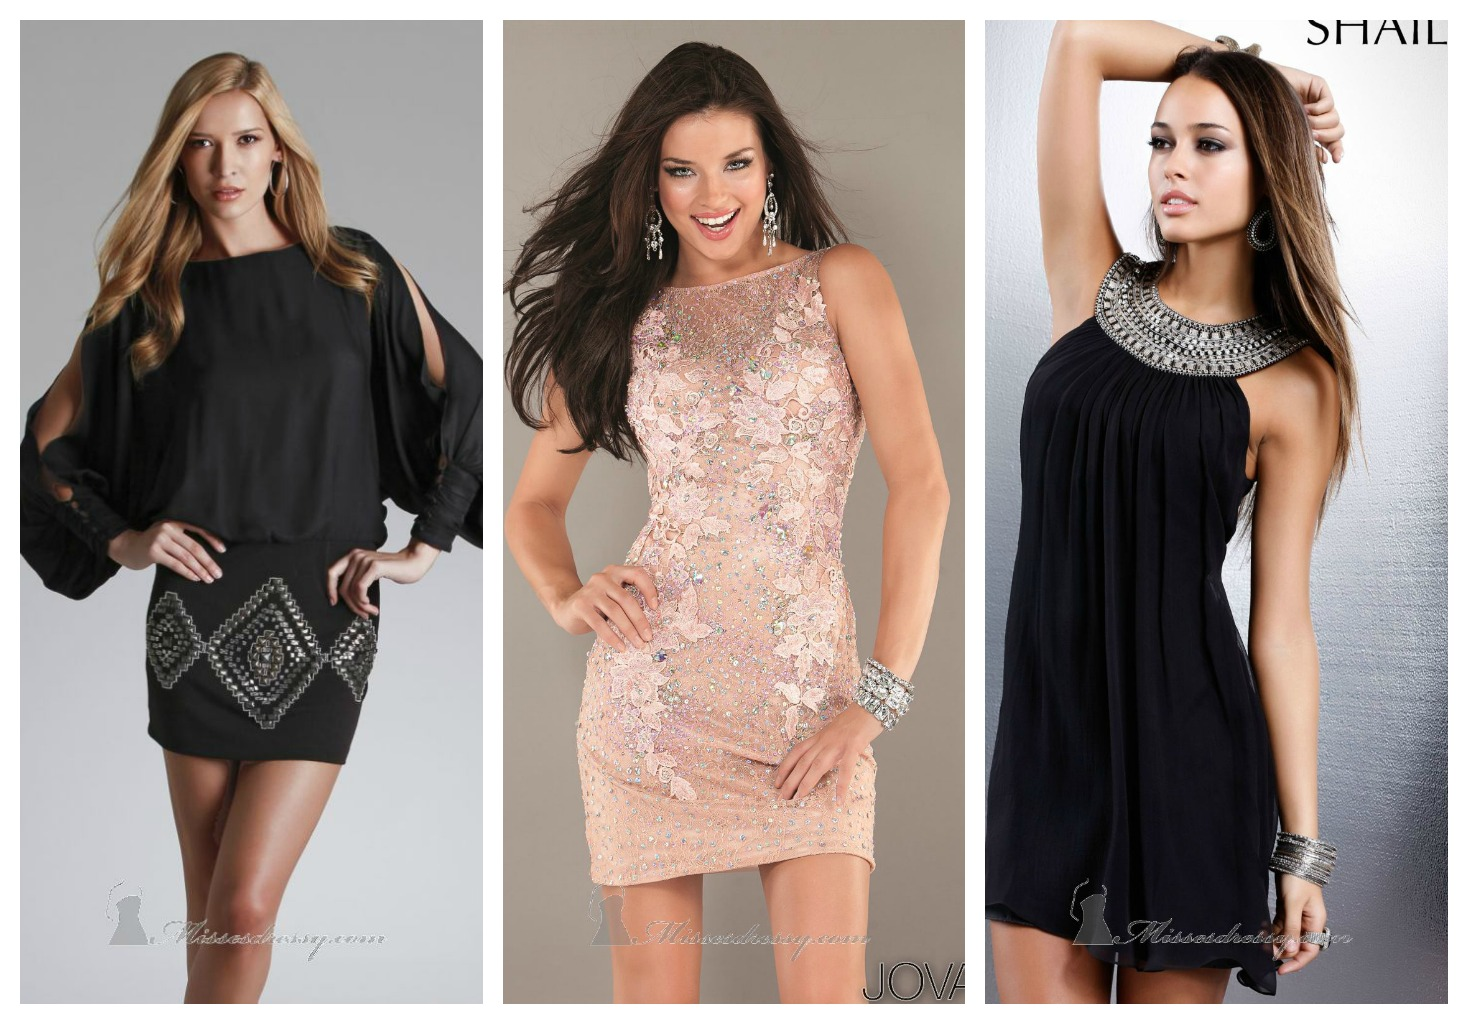 Christmas dress ideas for office party - Dresses Ideas Party Holidays